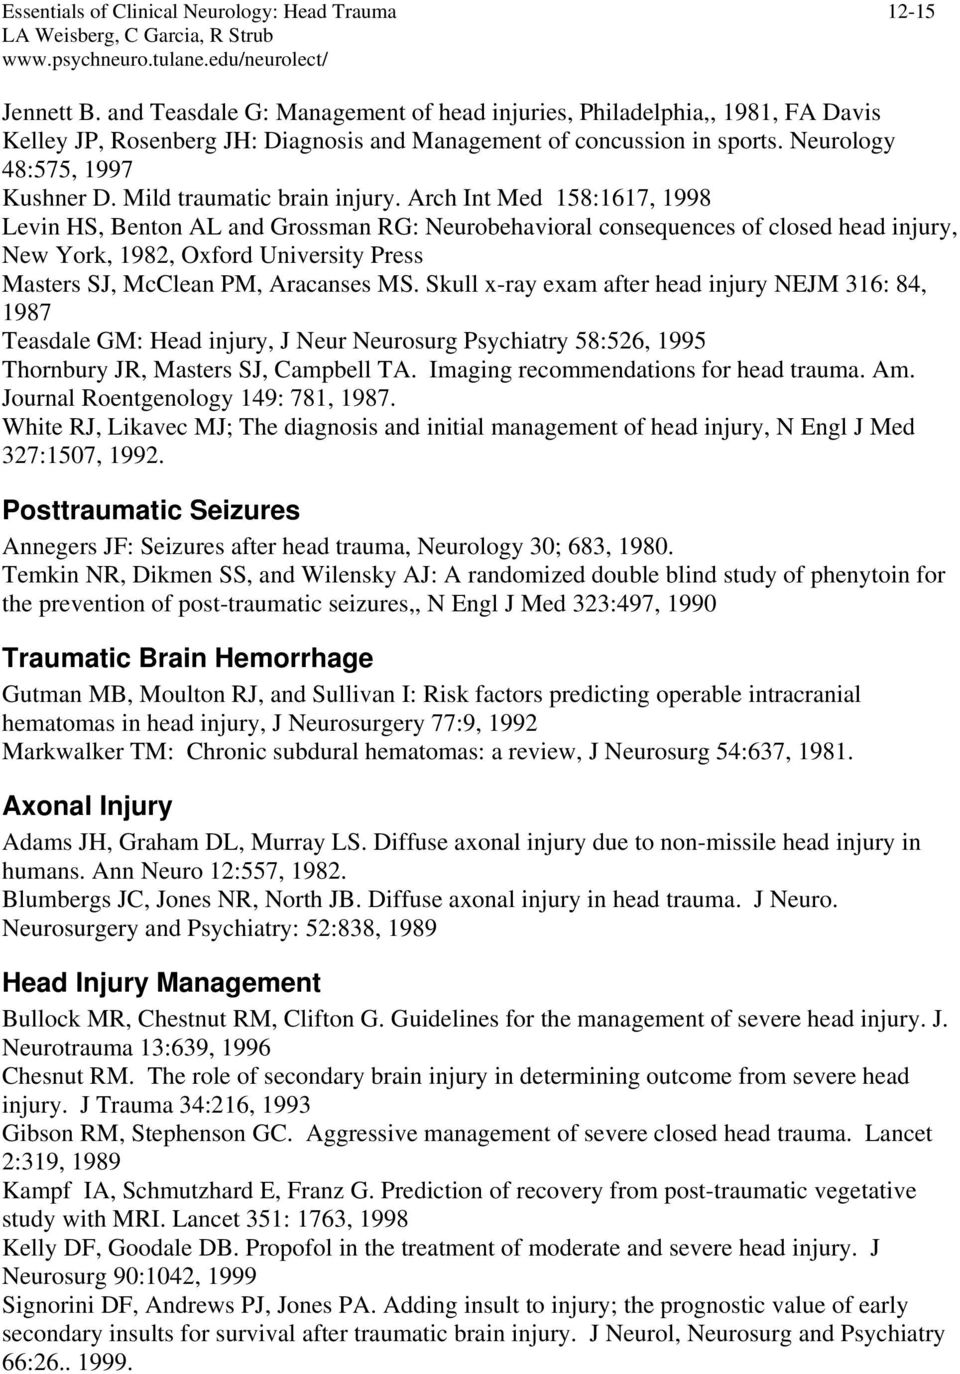 Mild traumatic brain injury.